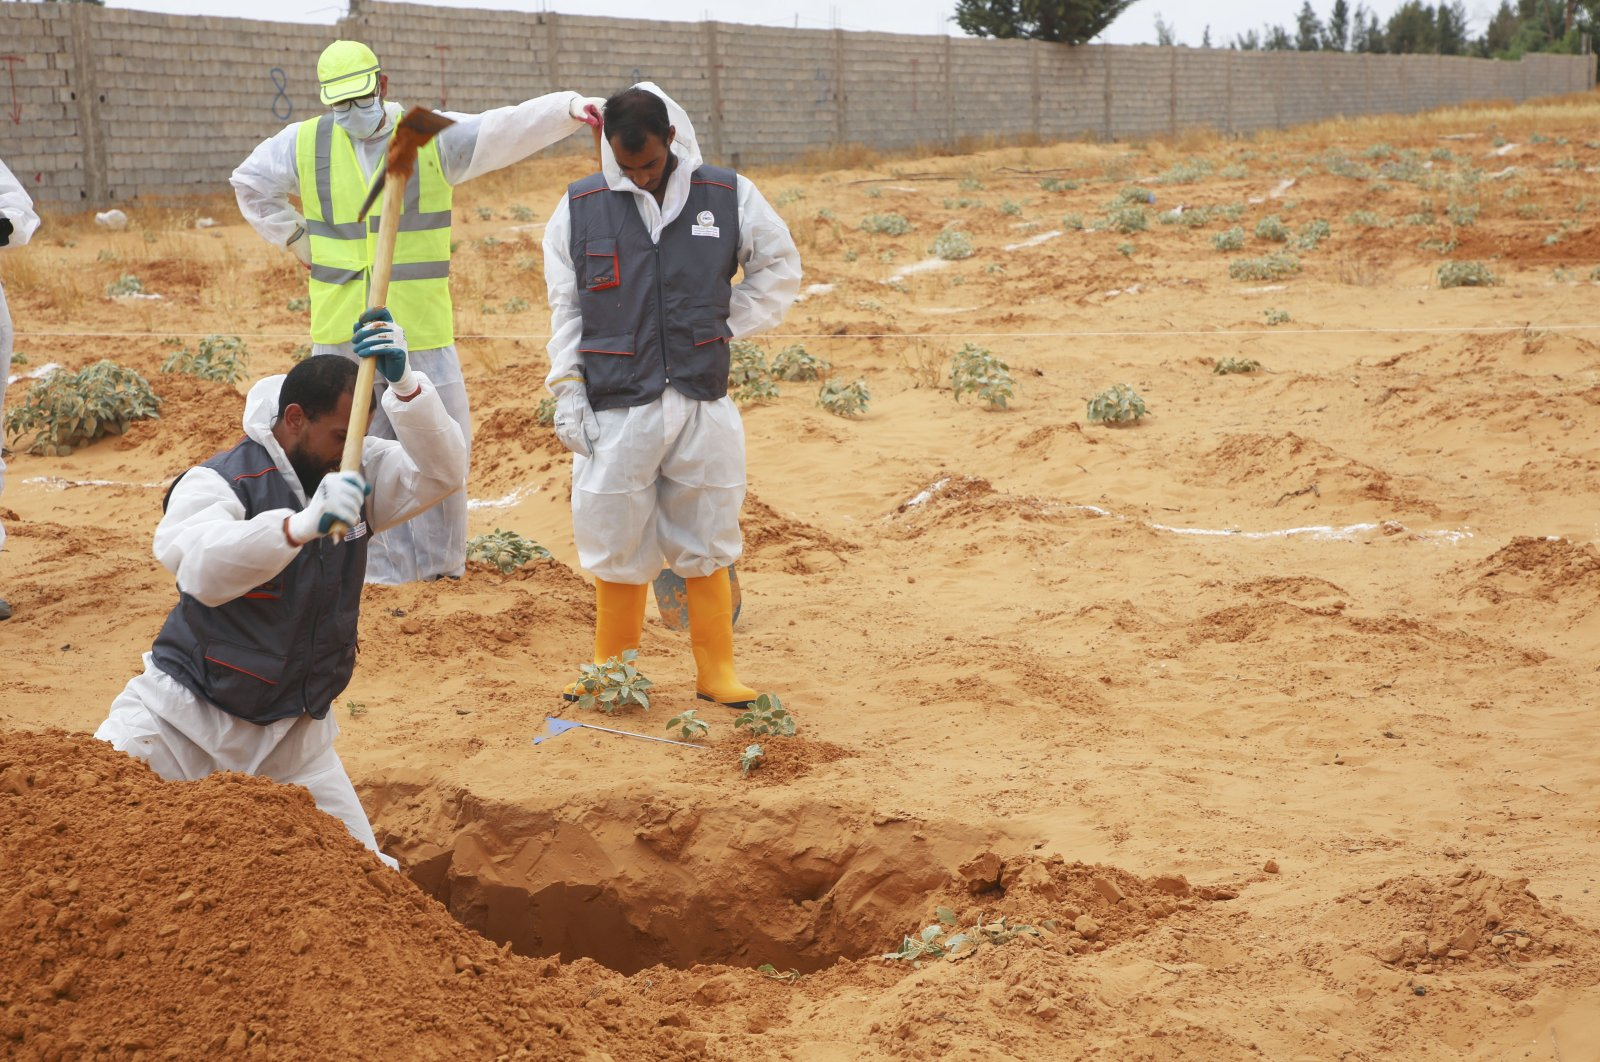 Libyan authorities dig out at a site of a suspected mass grave in the town of Tarhuna, Libya, June 23, 2020. (AP Photo)